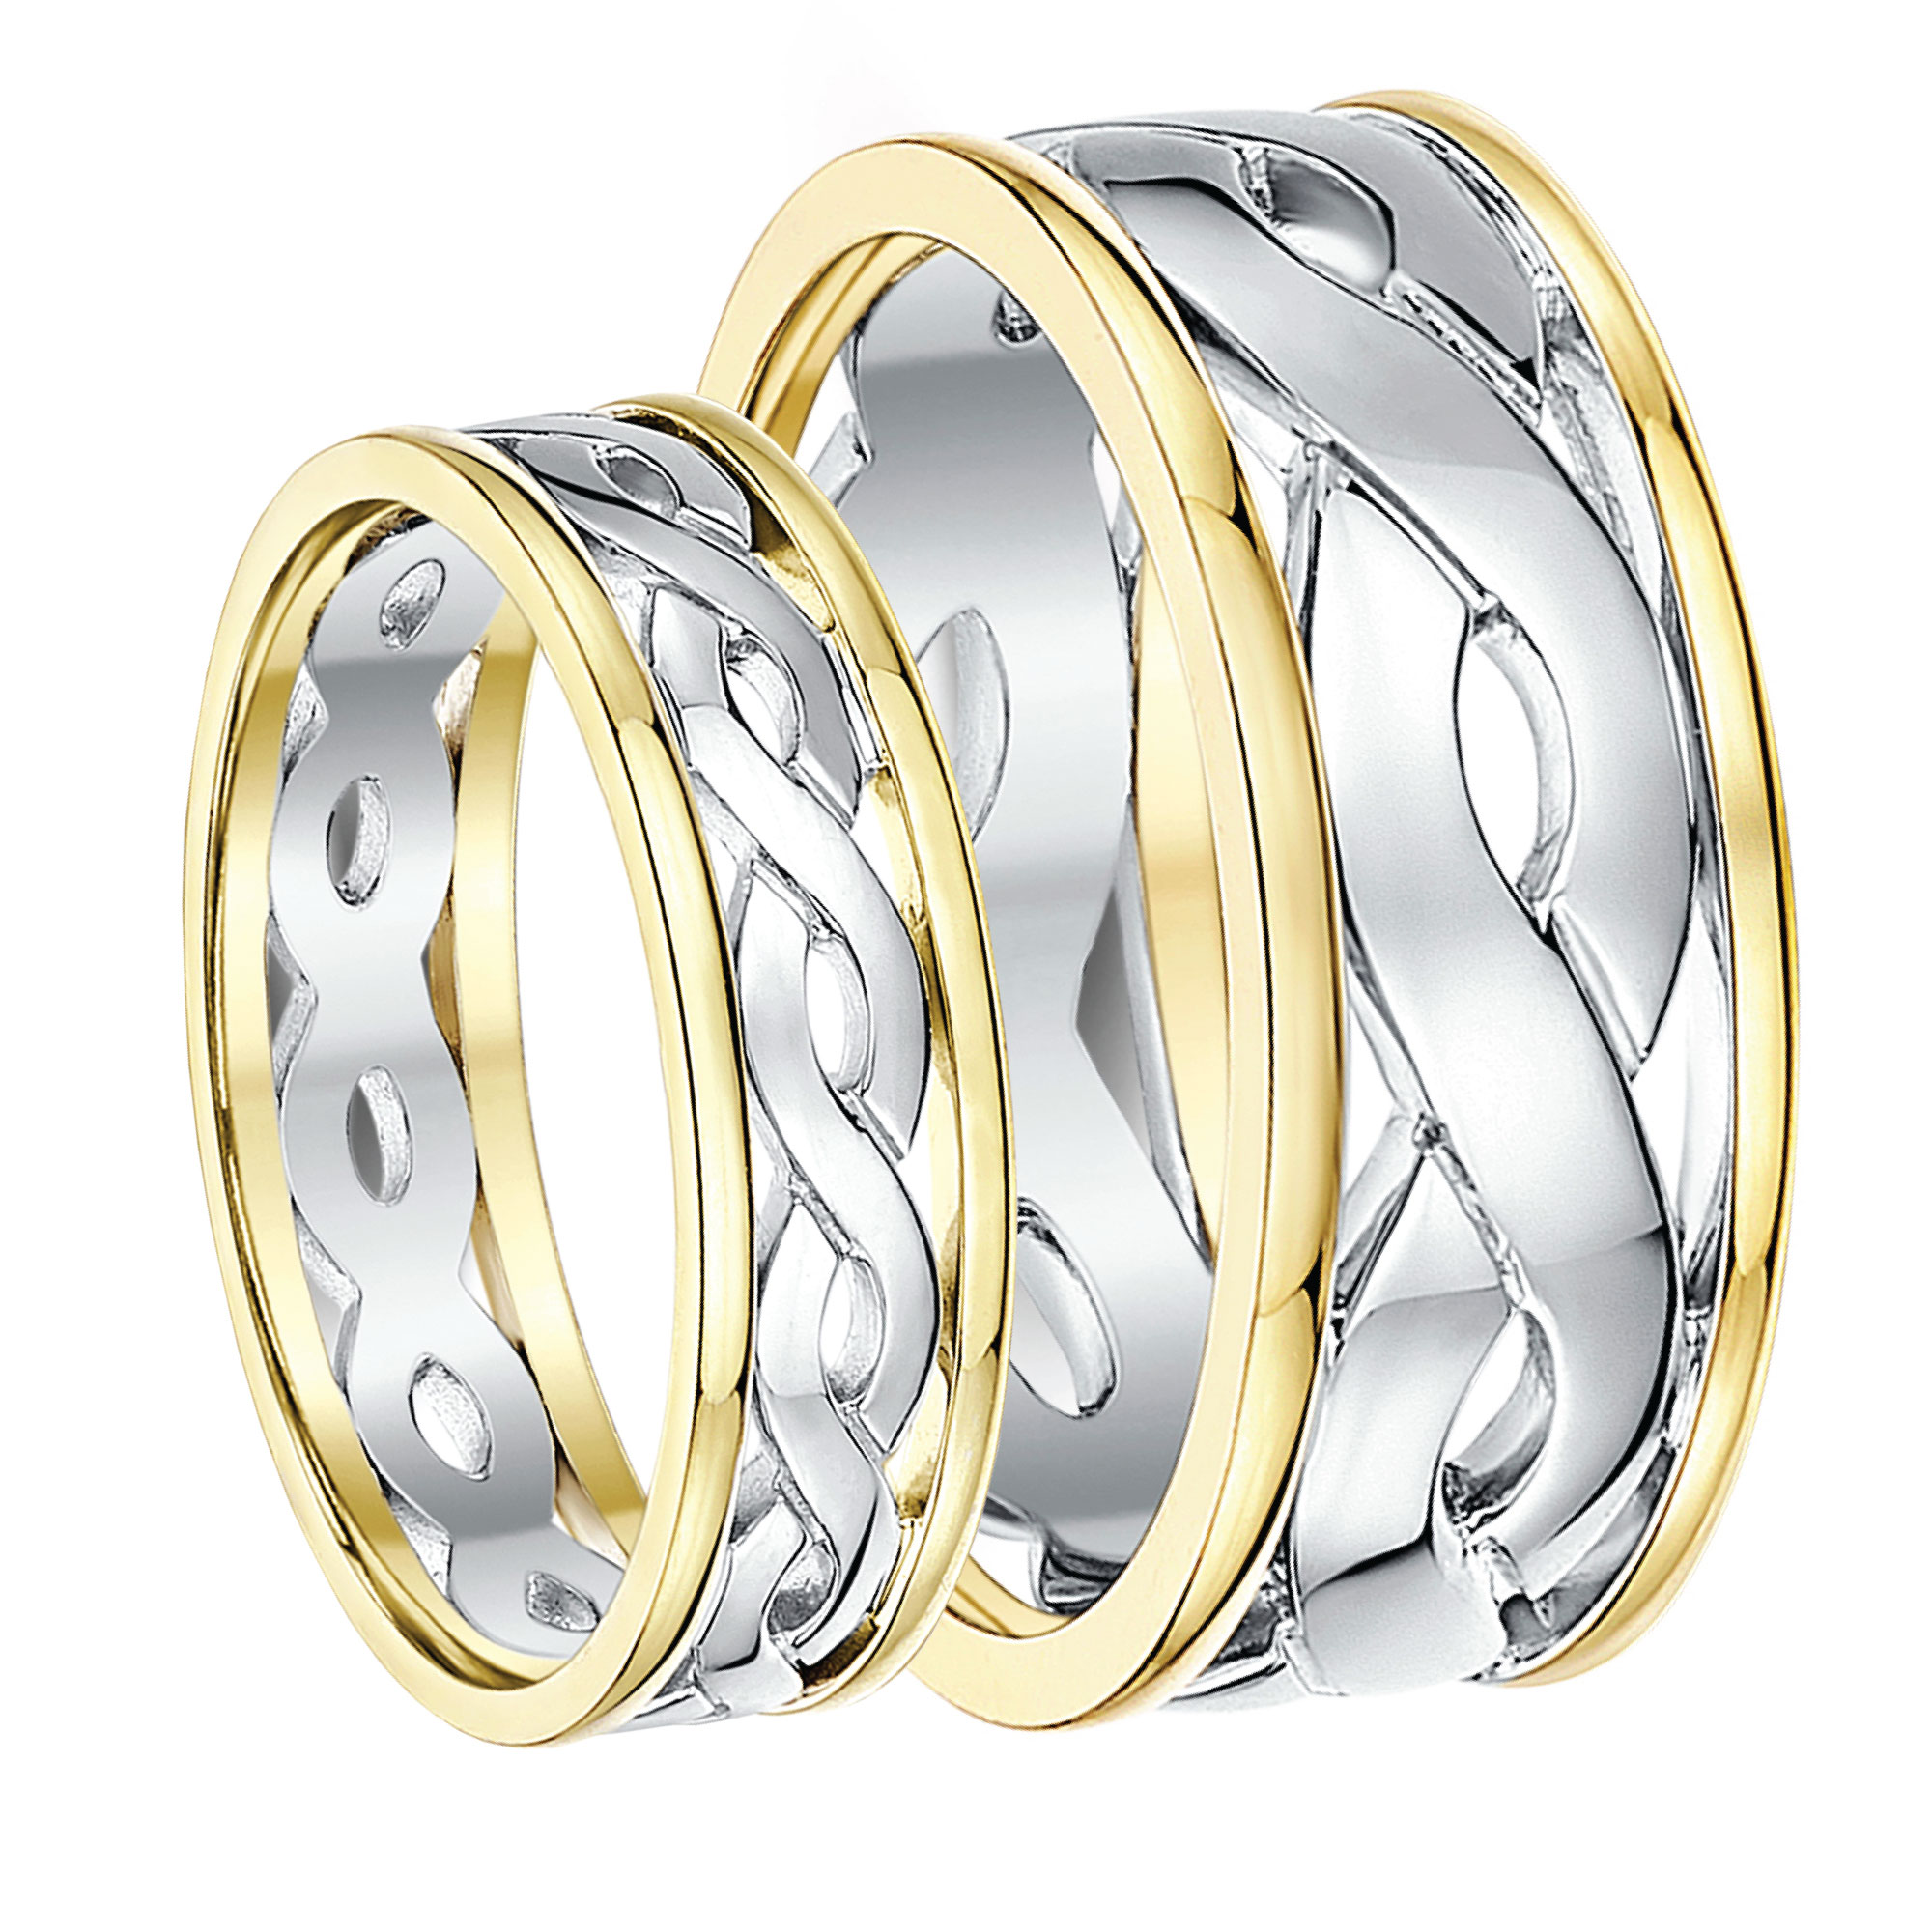 stone rings ring shop products patterned bands wedding jewellery aurum index classic ten b in norwich diamond